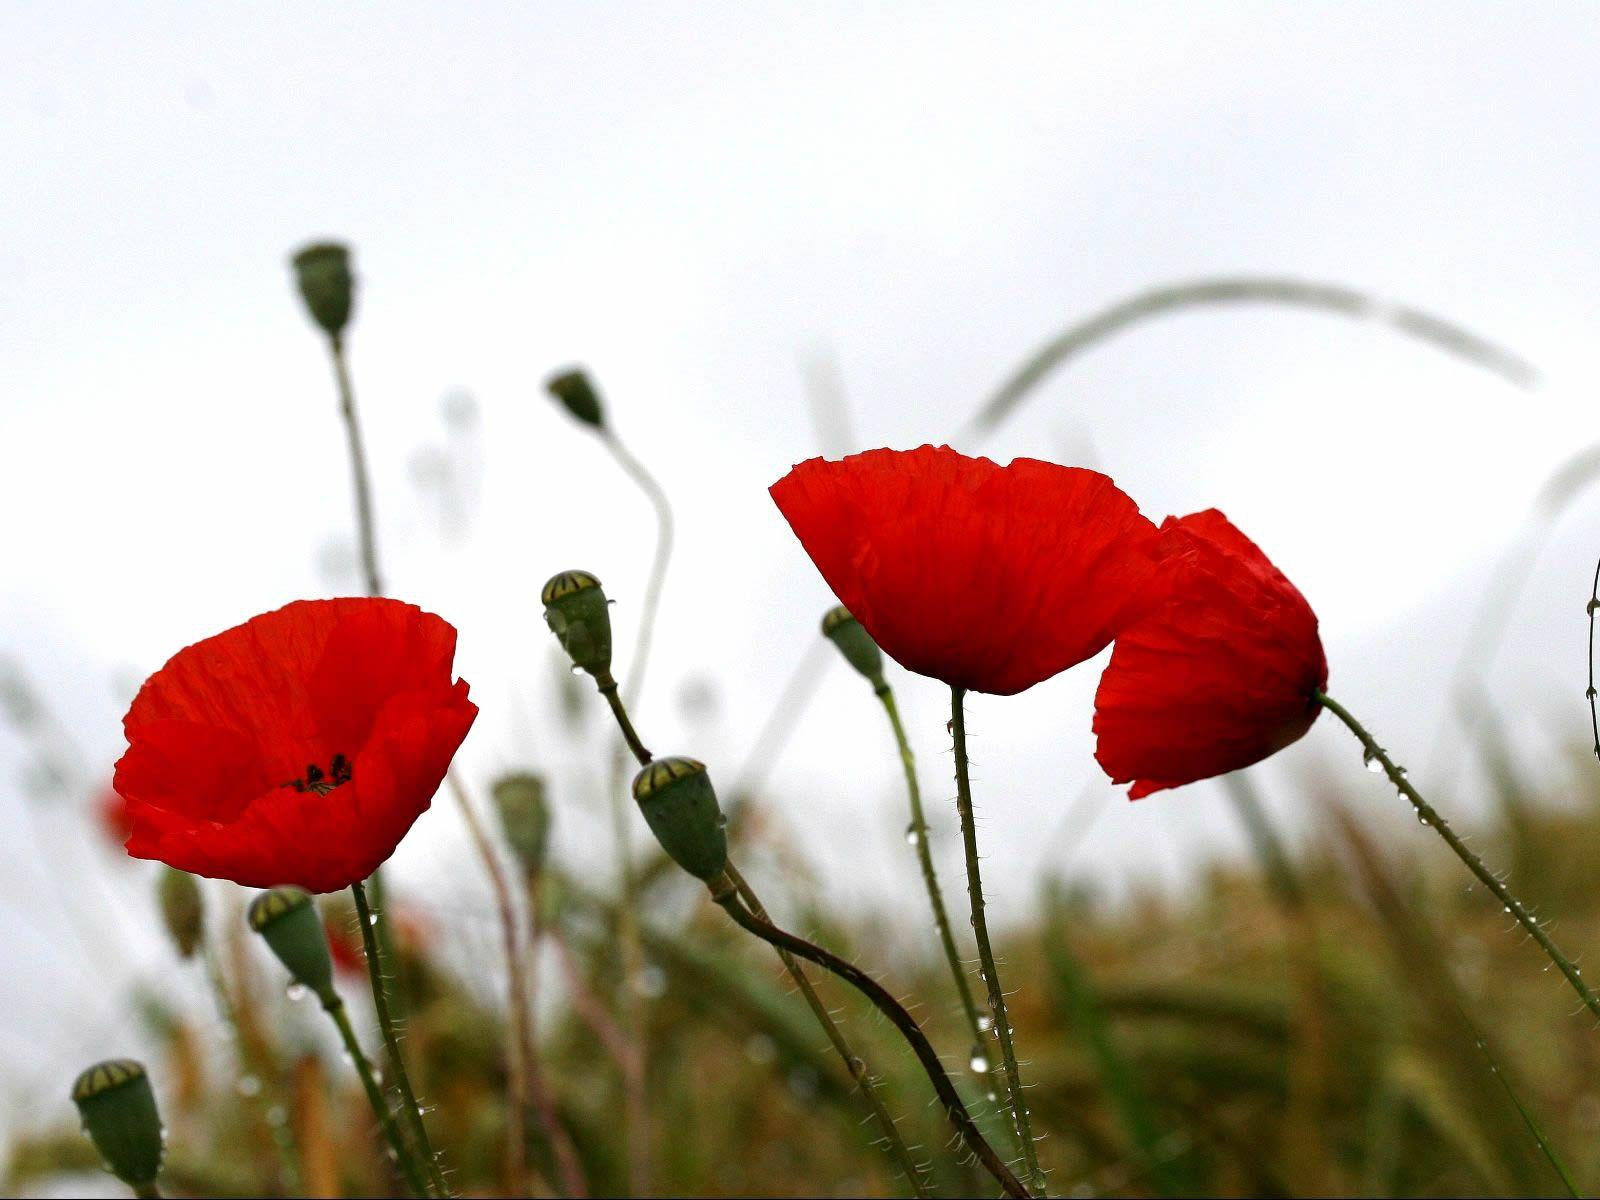 download wallpaper poppies red - photo #19